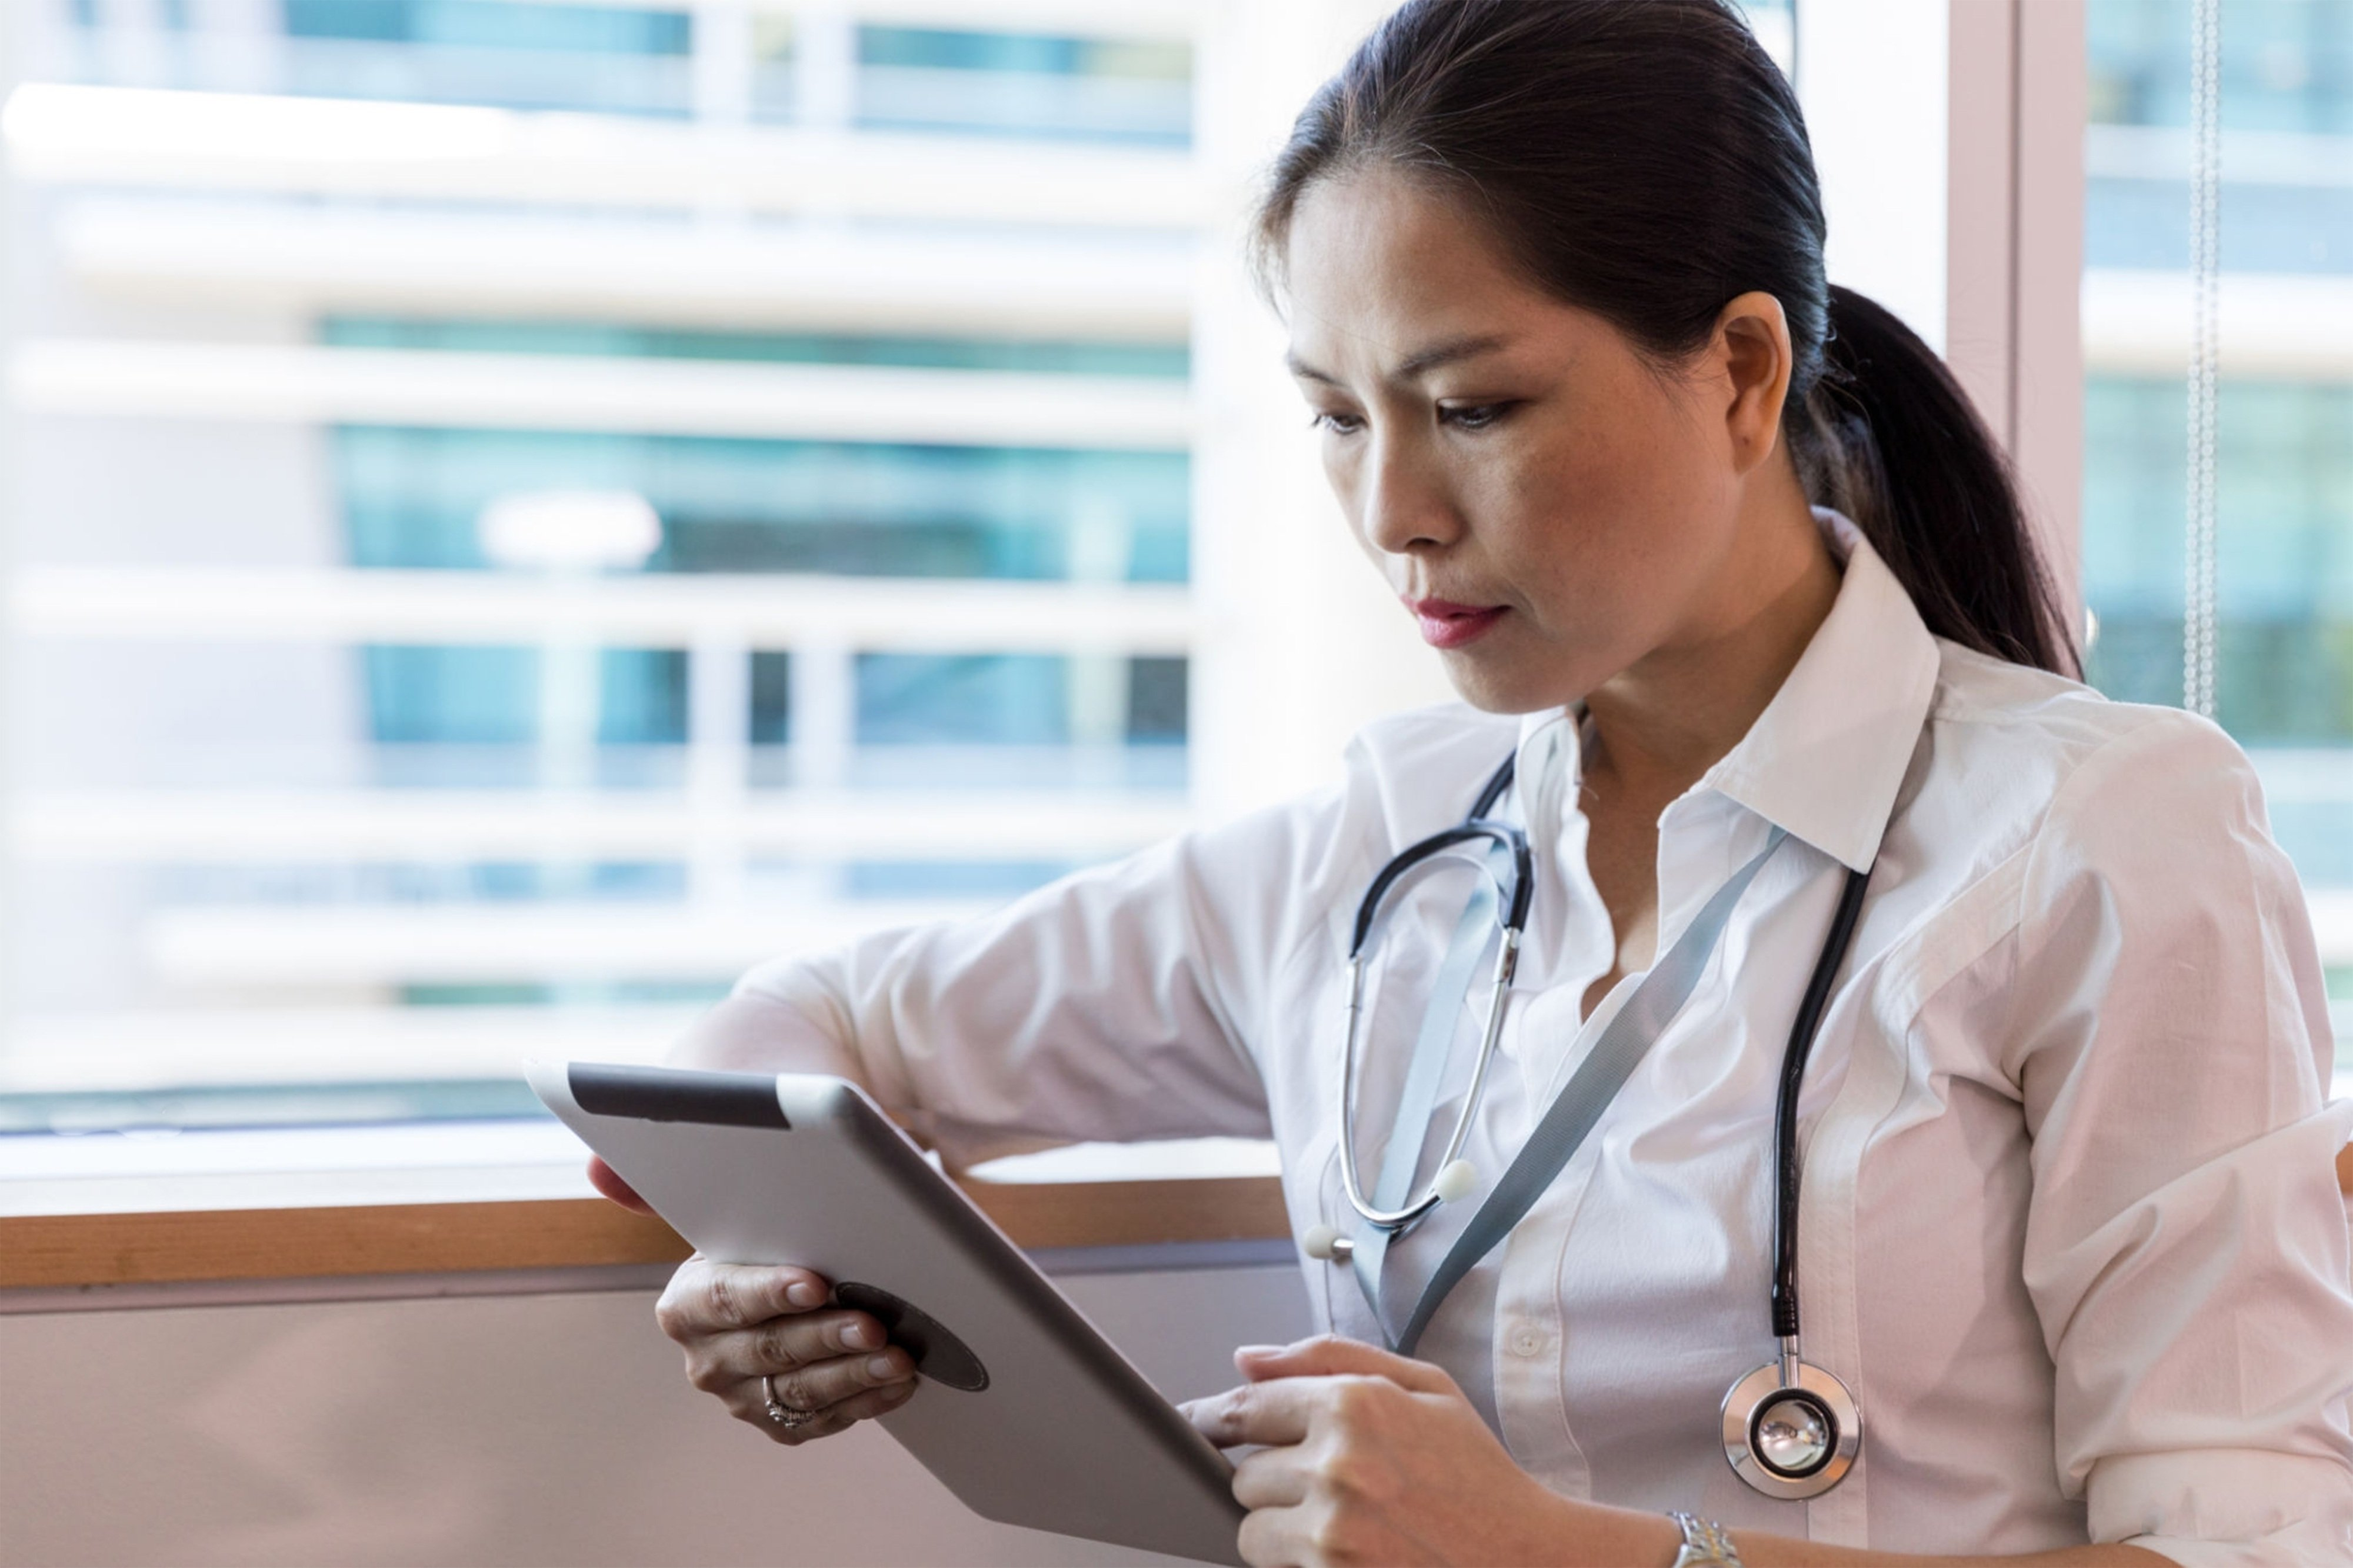 female doctor reviewing information on a tablet